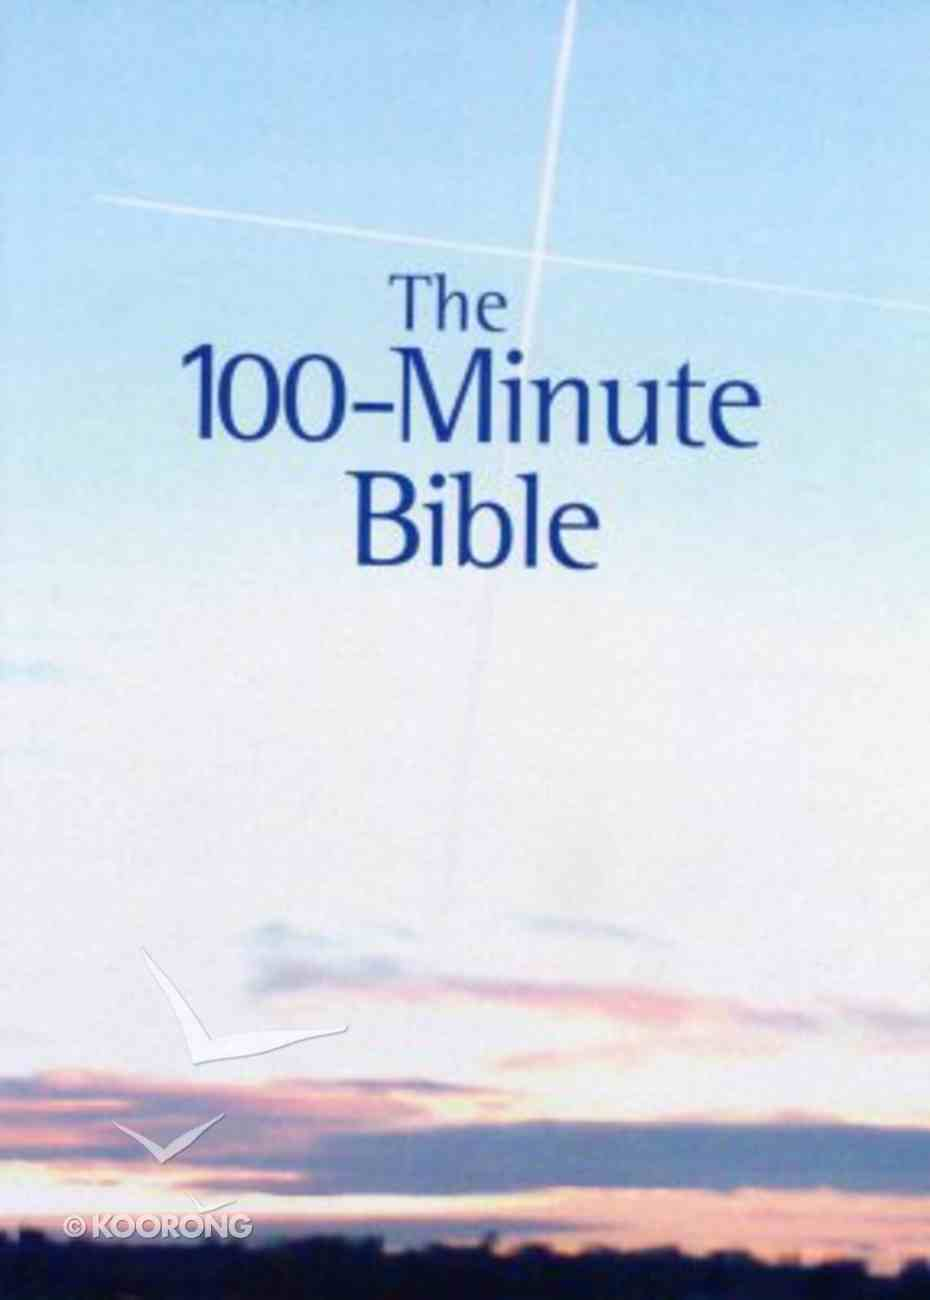 The 100-Minute Bible (Giant Print Edition) Paperback